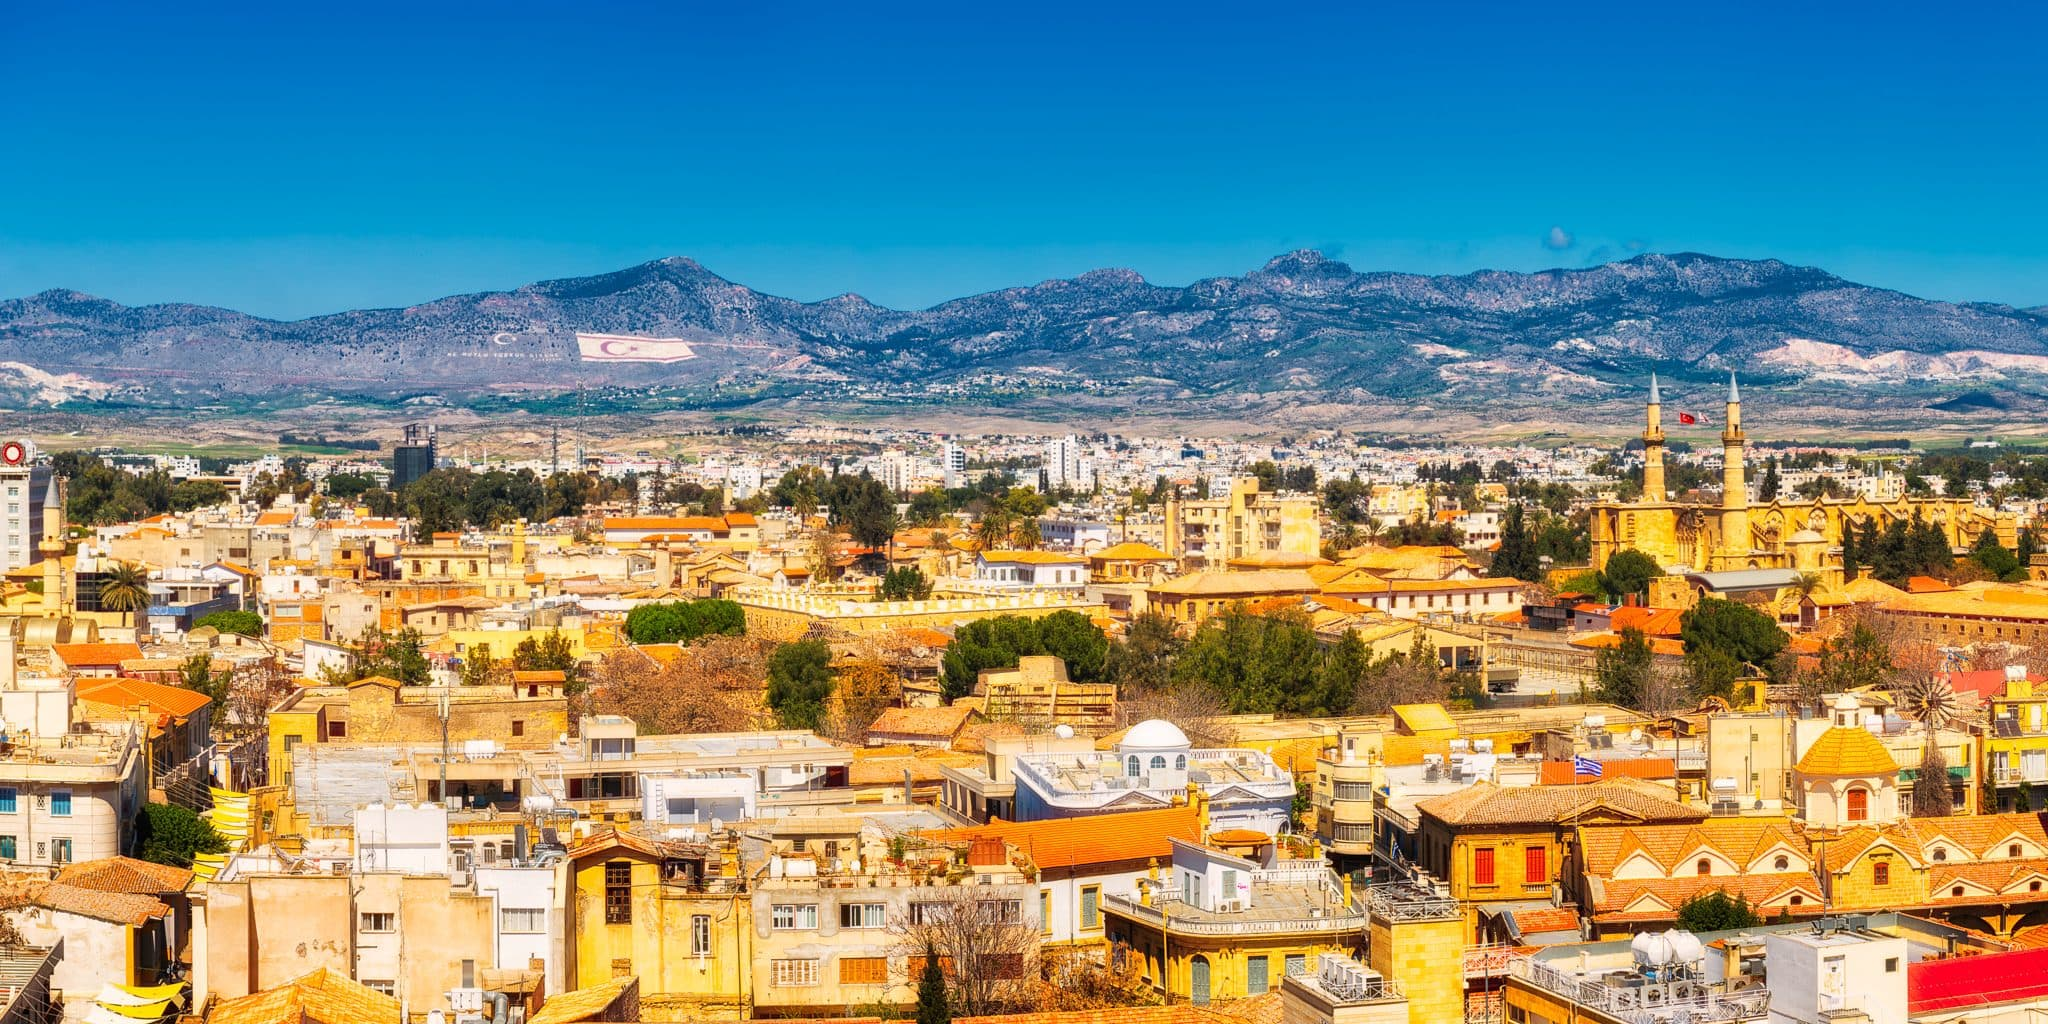 Panorama of Nicosia in Cyprus taken from The Shacolas Museum and Observatory.